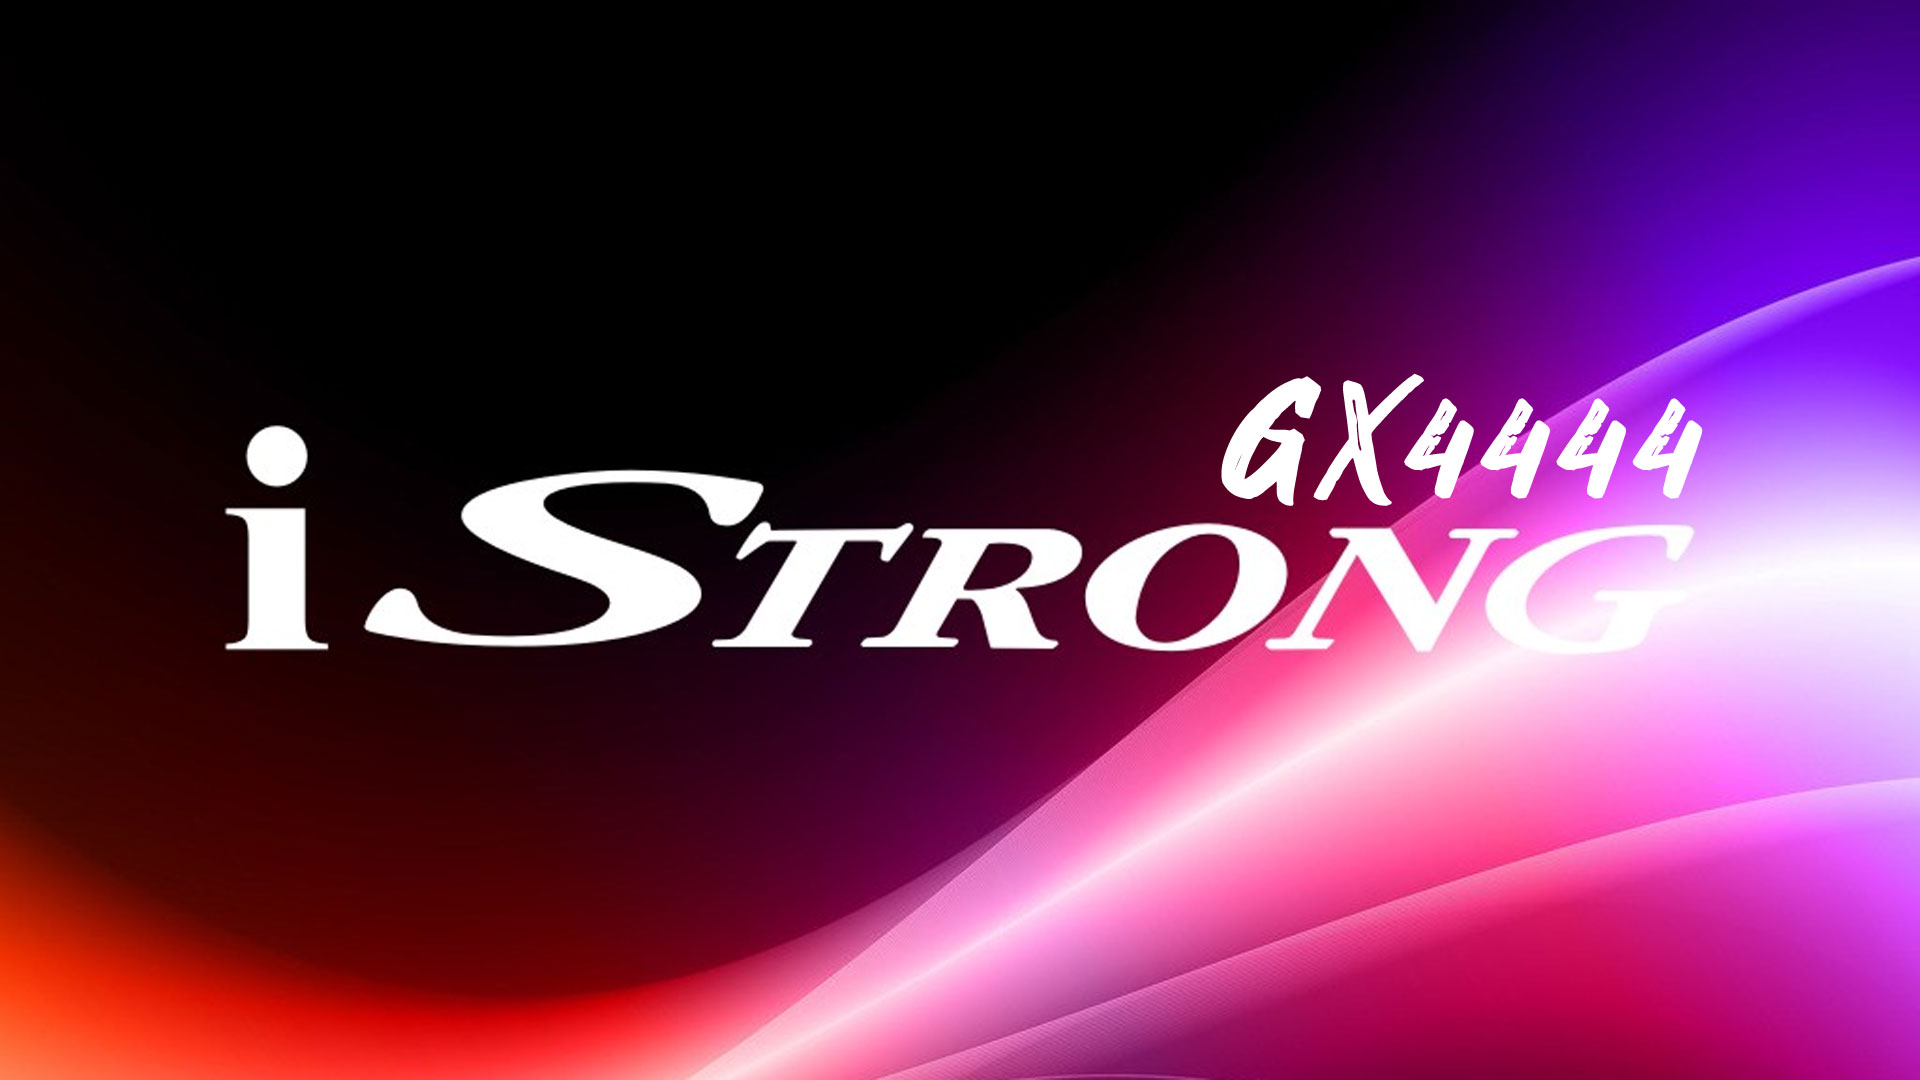 Download Software i Strong GX 4444 HD New Update Firmware Receiver